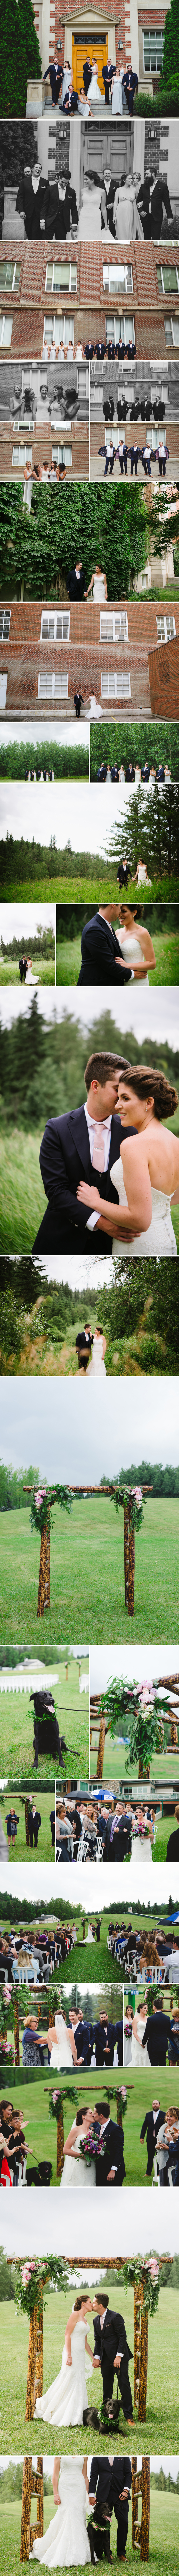 bbcollective_yeg_blog_2017_breannaandhunter_wedding_photographycomp004.jpg